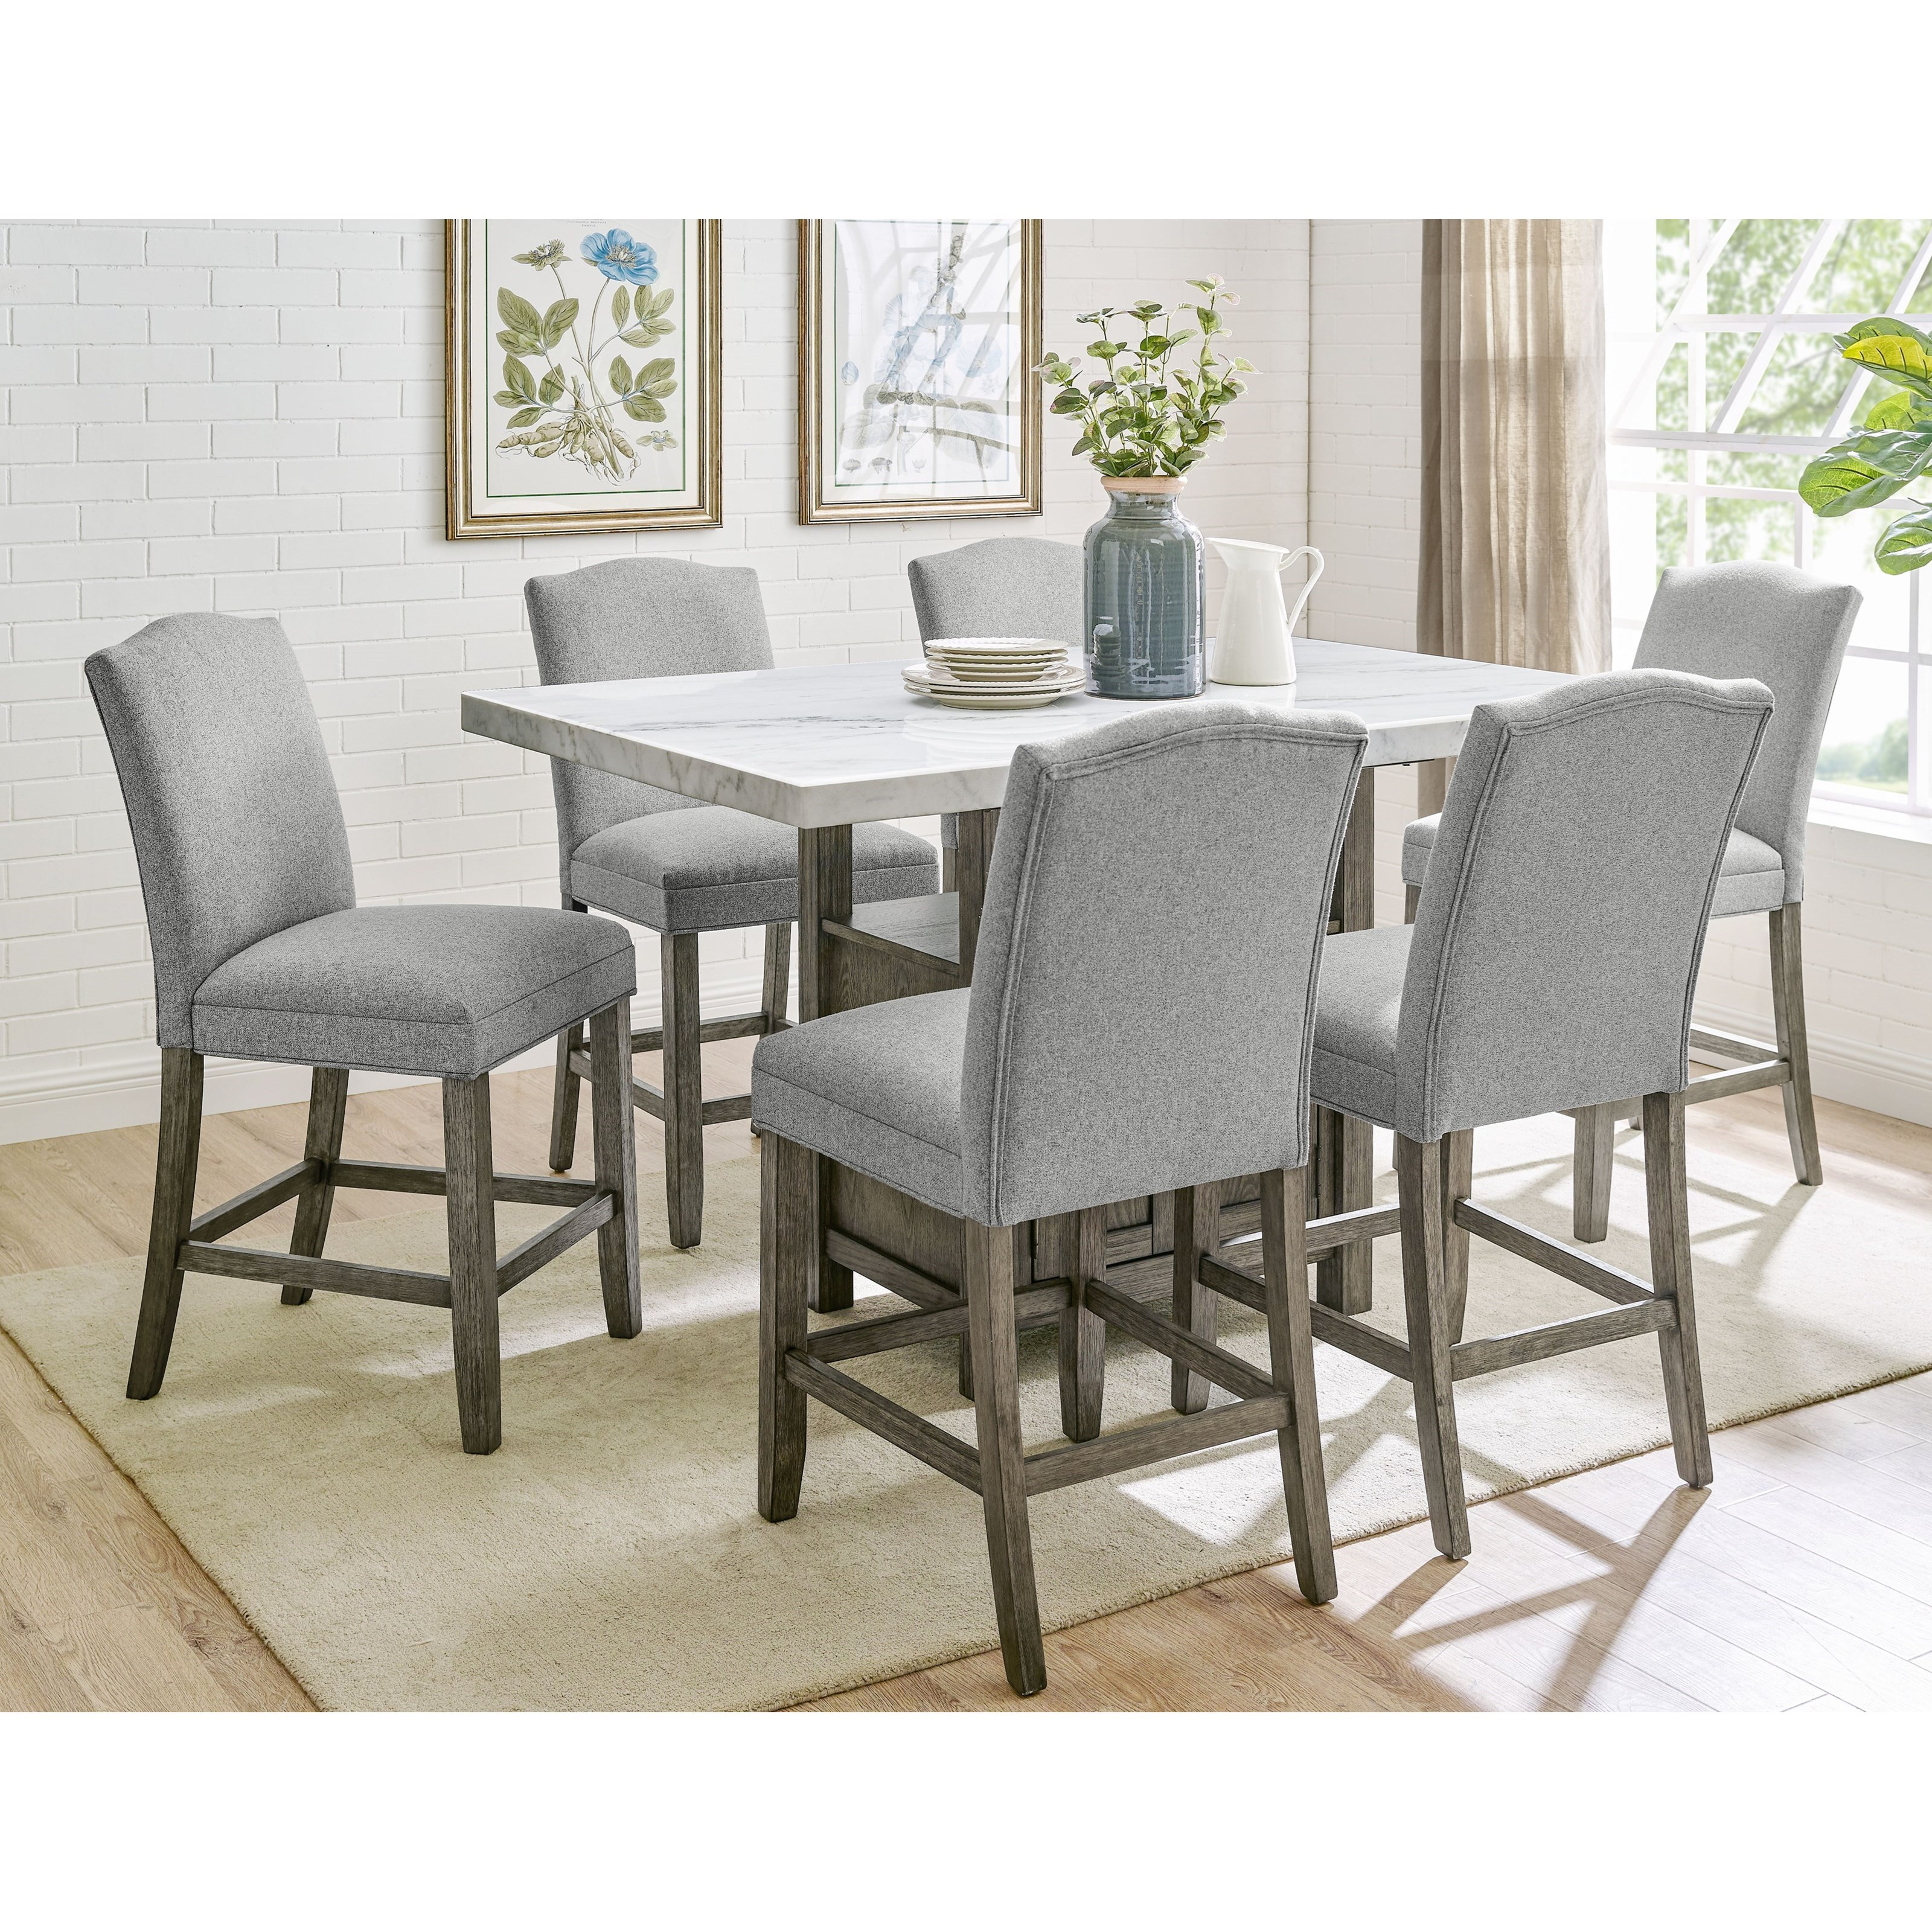 Grayson 7-Piece Counter Height Dining Set by Steve Silver at Northeast Factory Direct